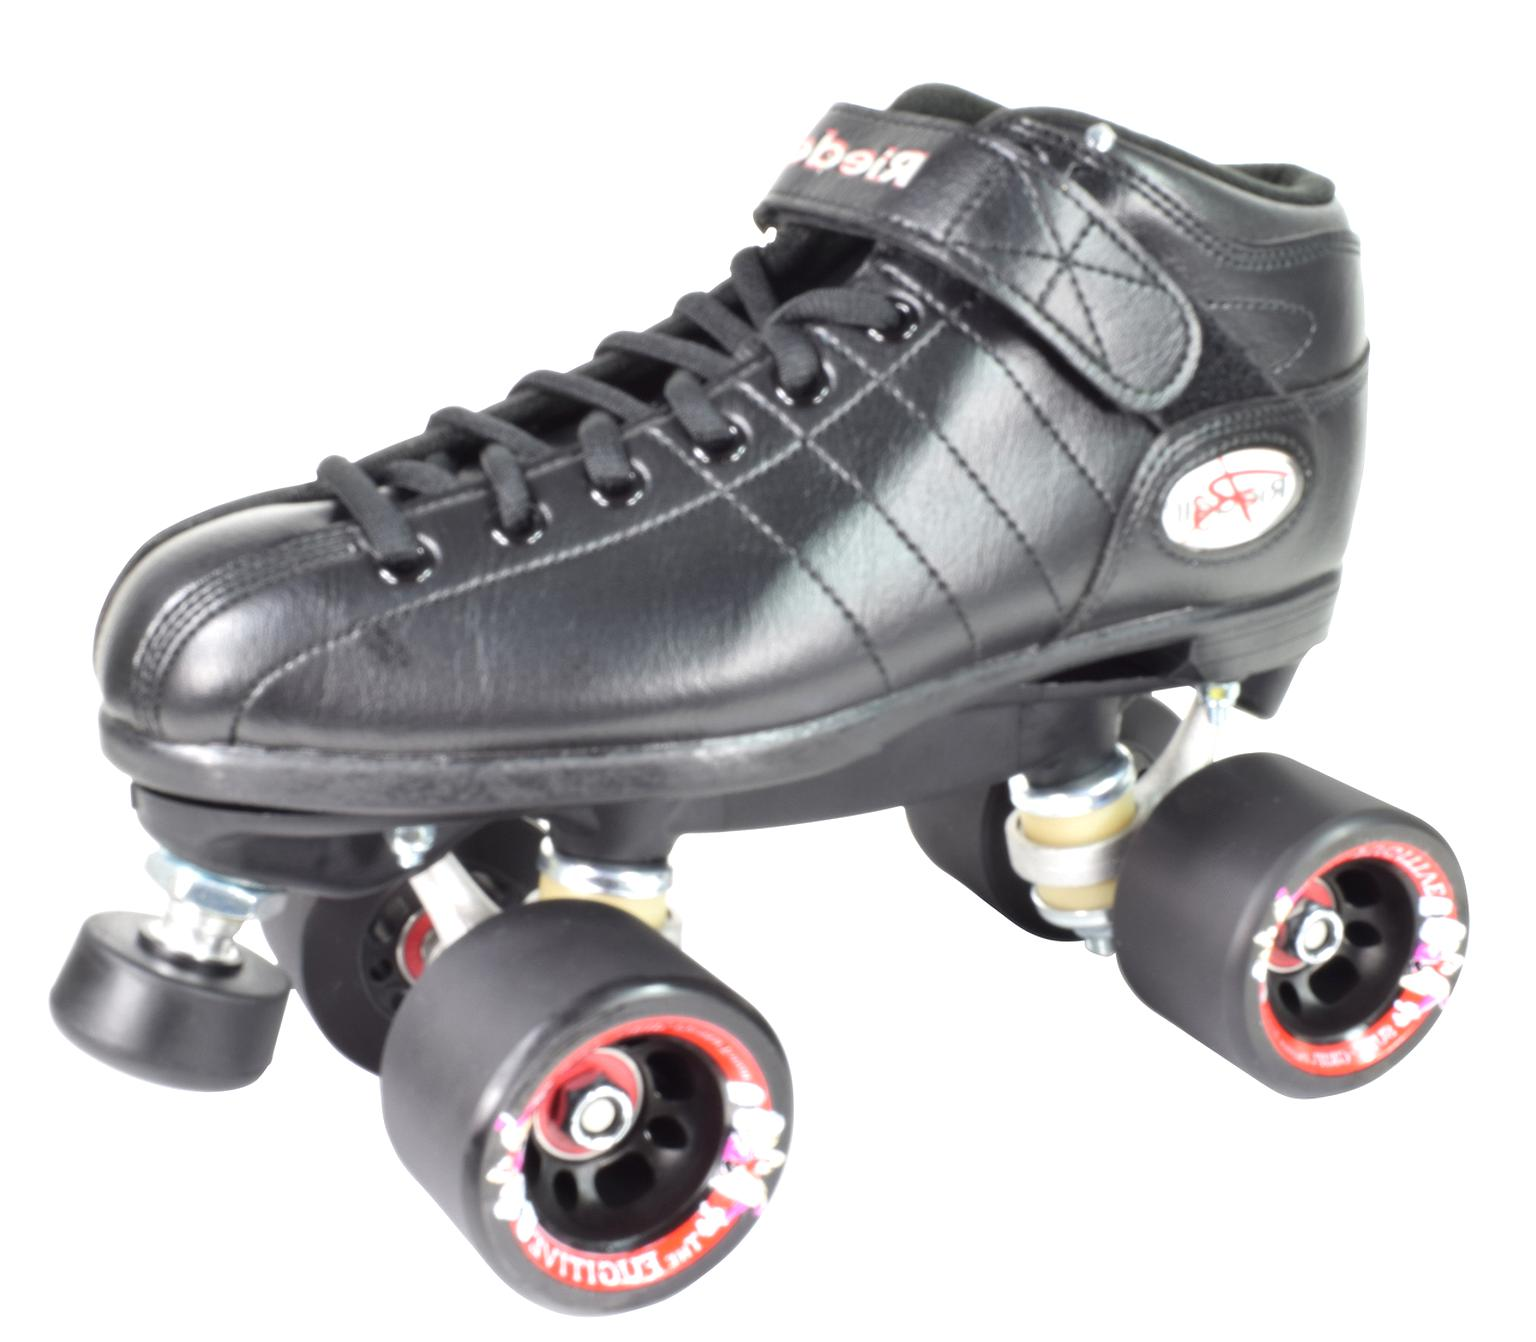 riedell speed skates for sale